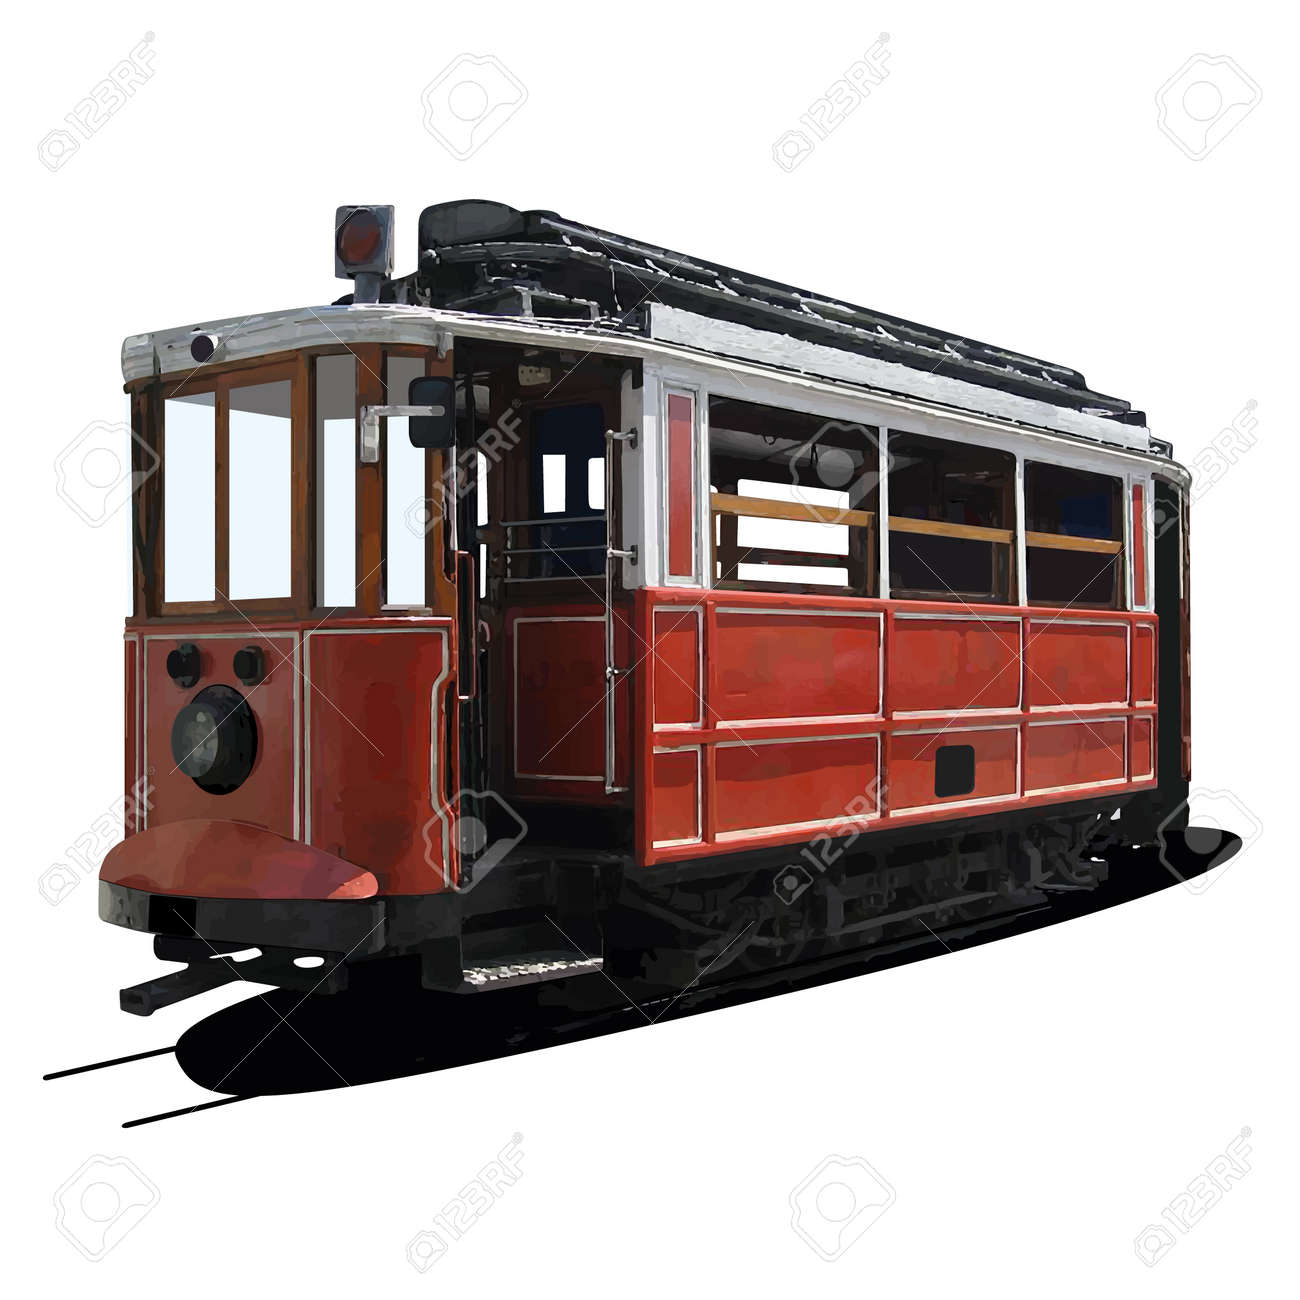 abstract illustration of a tram - 16196053